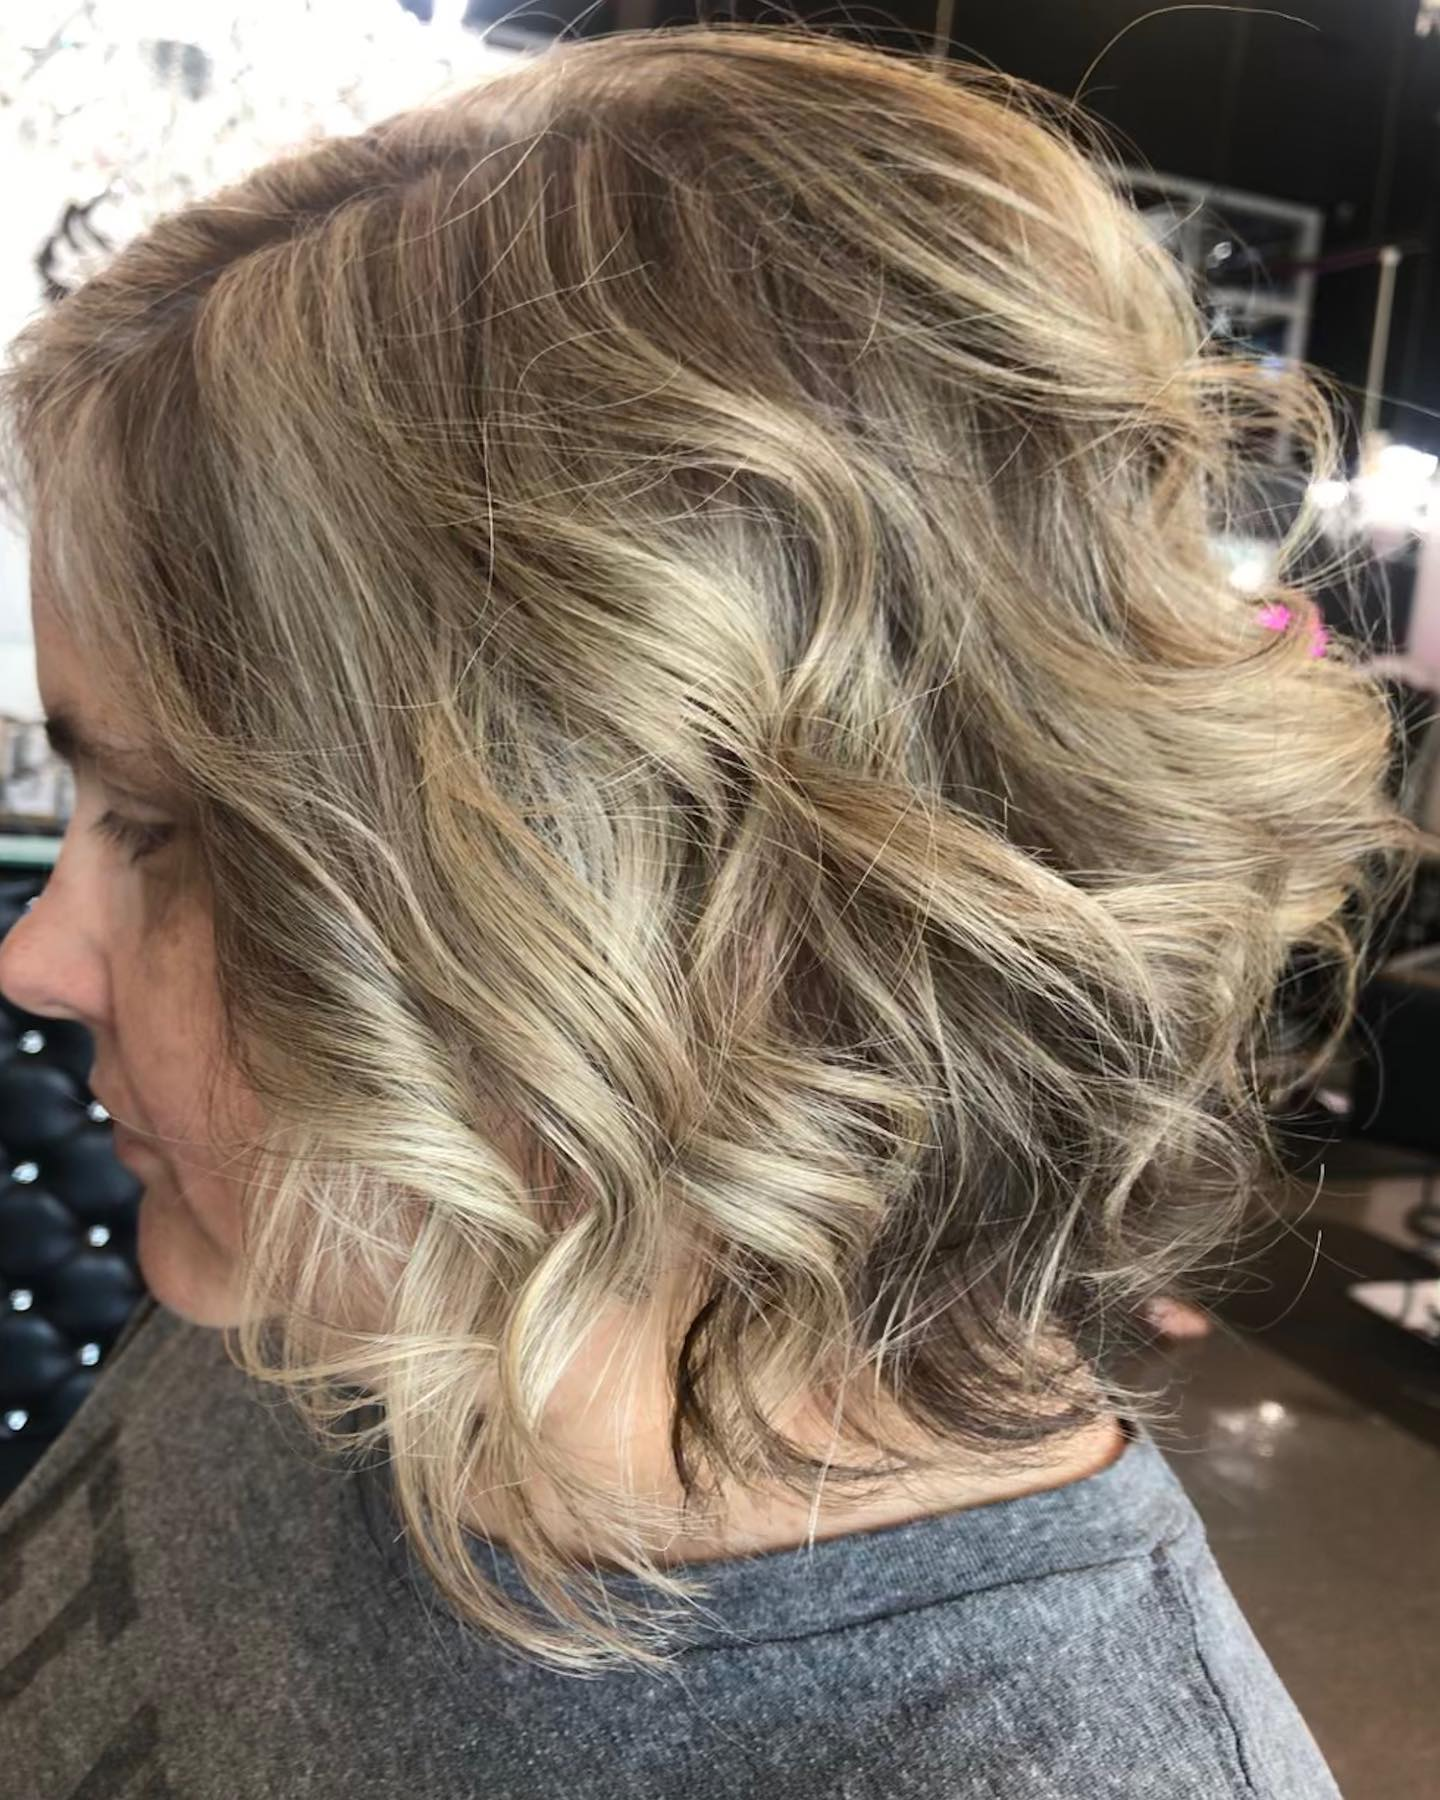 The colors are starting to change  and so is your hair   •  Beautiful transforma…